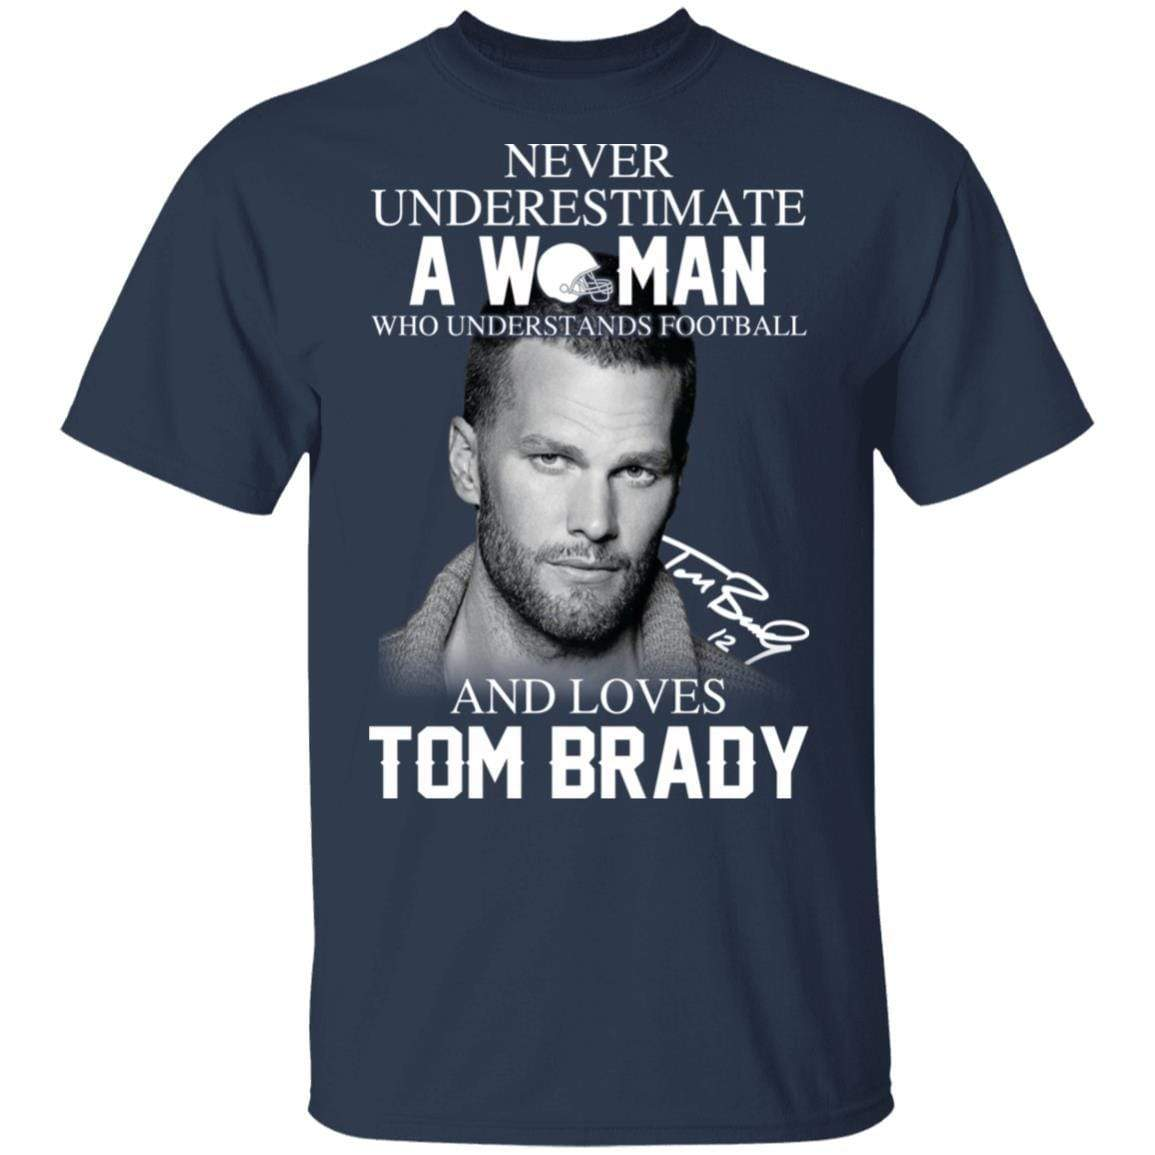 Never Underestimate A Woman Who Understands Football And Loves Tom Brady T-Shirts, Hoodies 1049-9966-86894527-48248 - Tee Ript